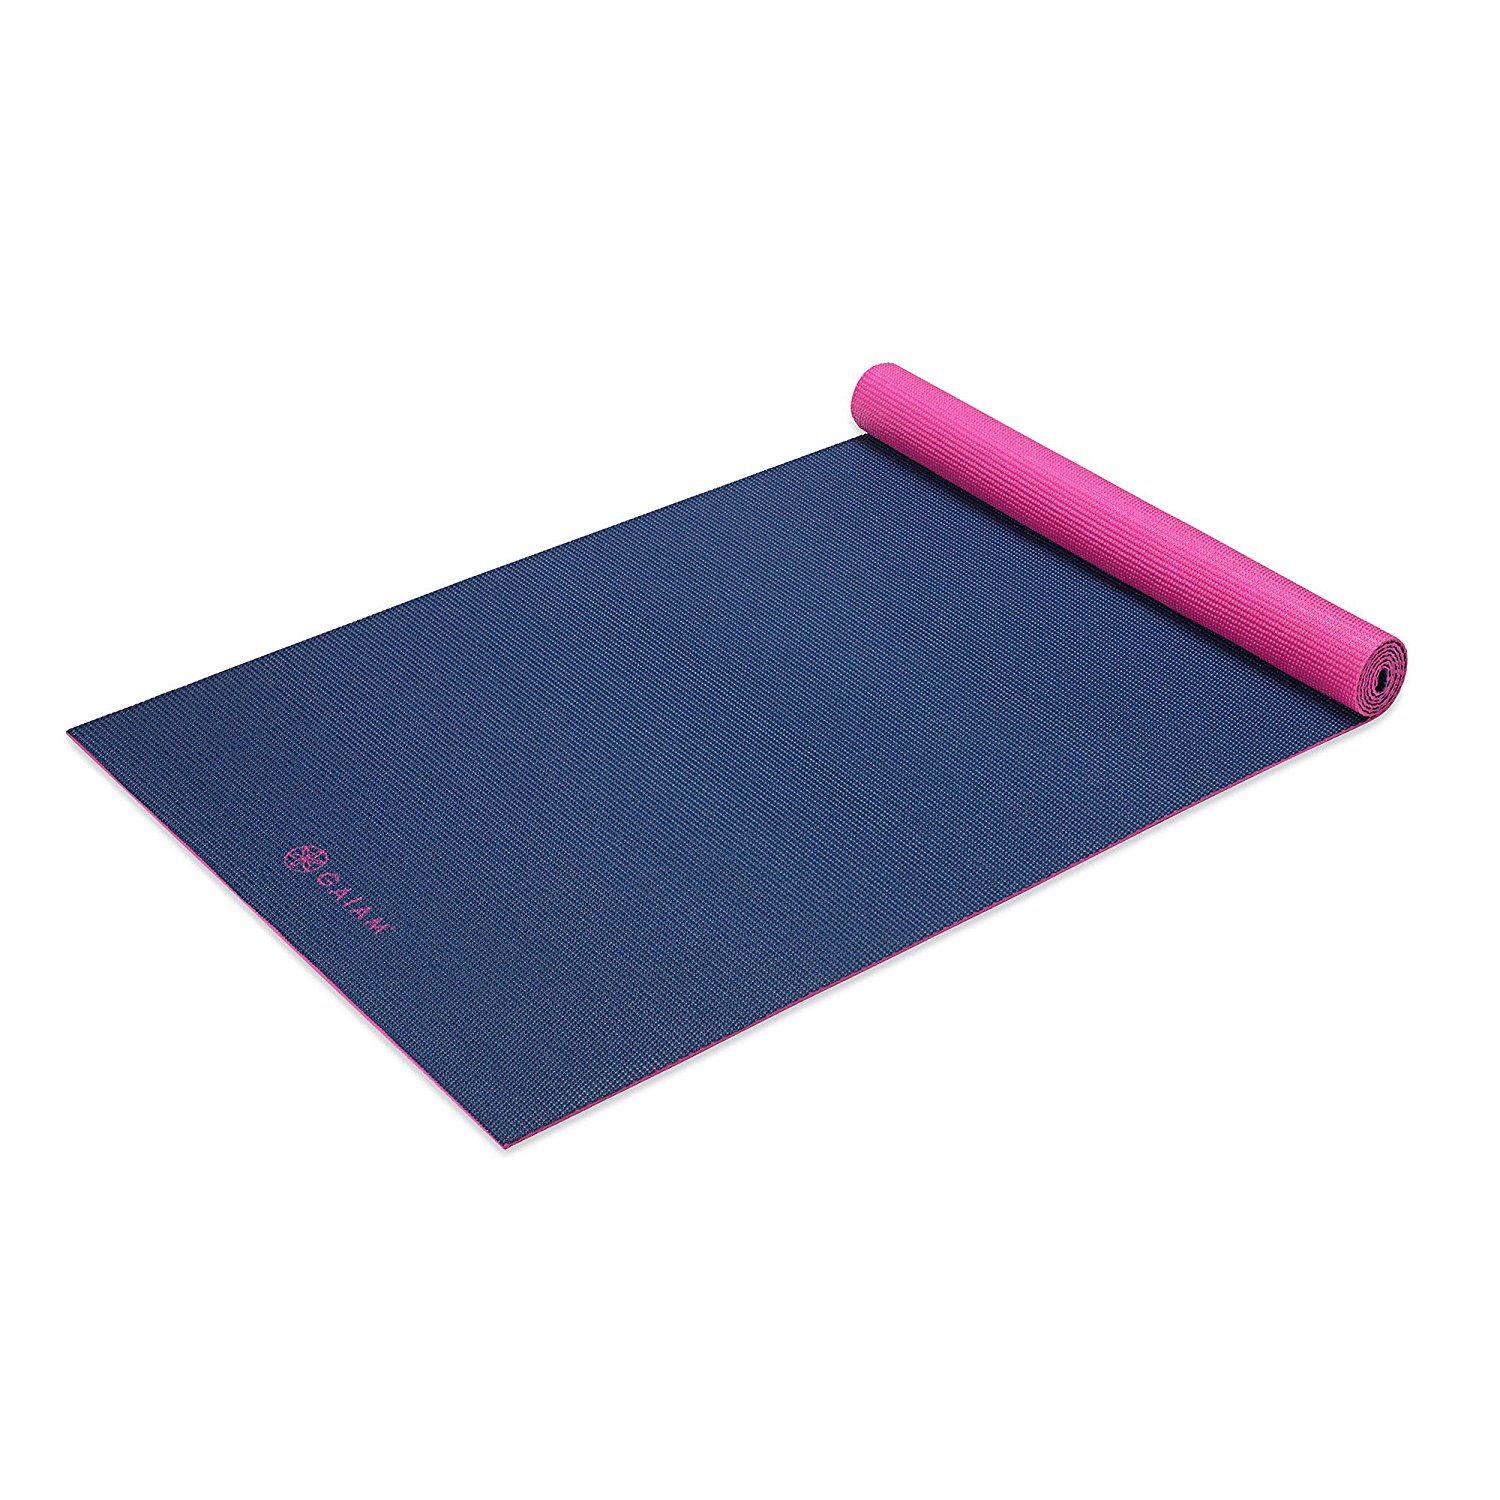 gaiam solid non-slip navy/pink yoga mat